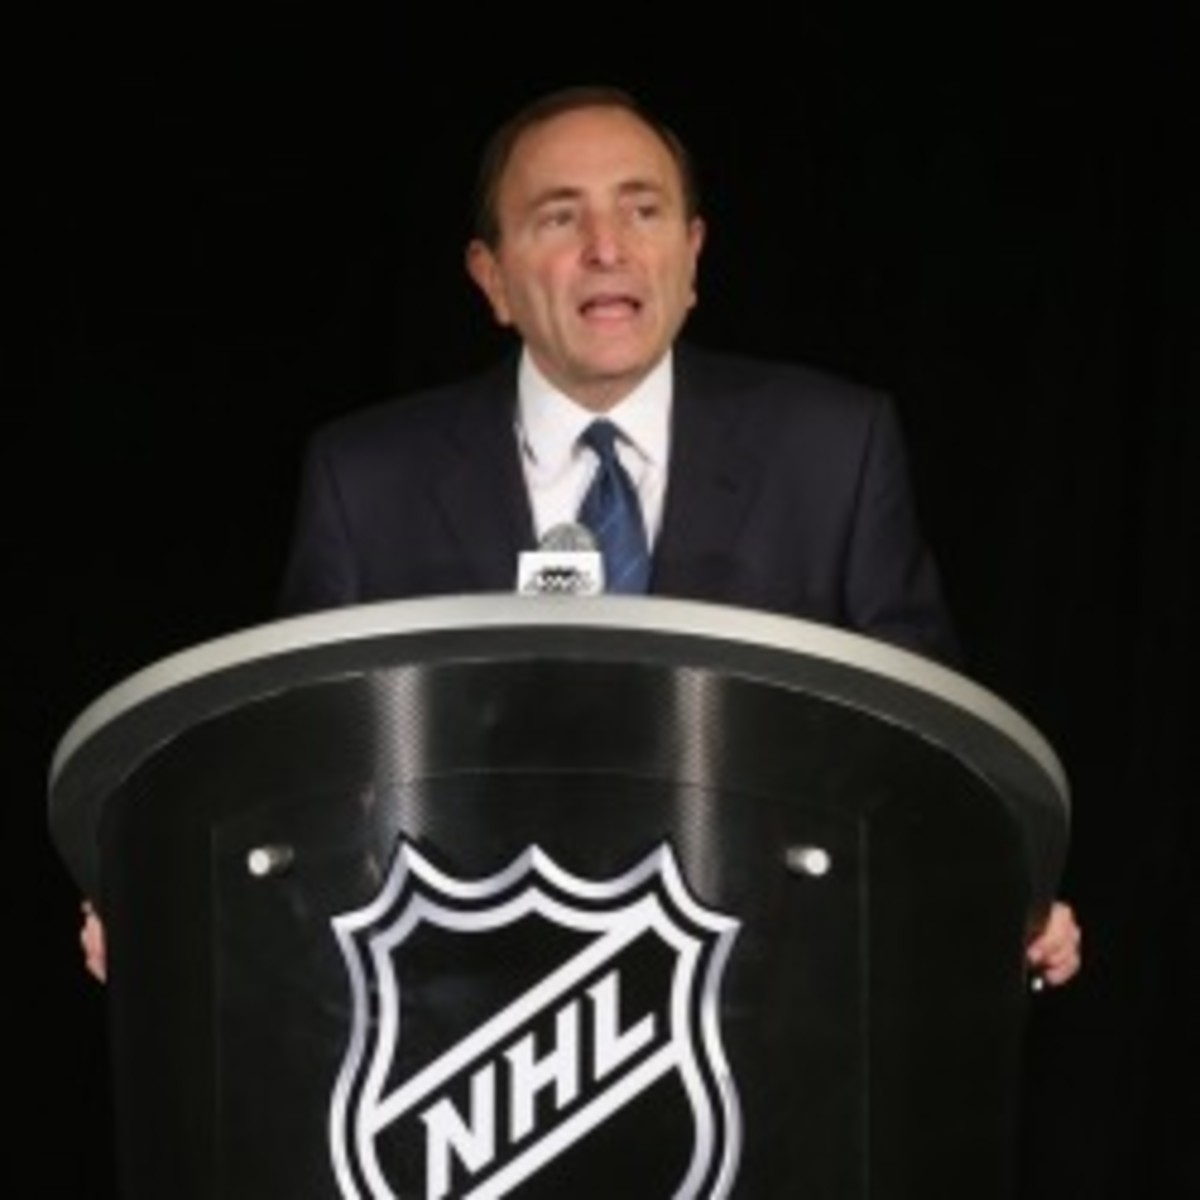 NHL Commissioner Gary Bettman's league is now in the 91st day of the lockout. (Bruce Bennett/Getty Images)